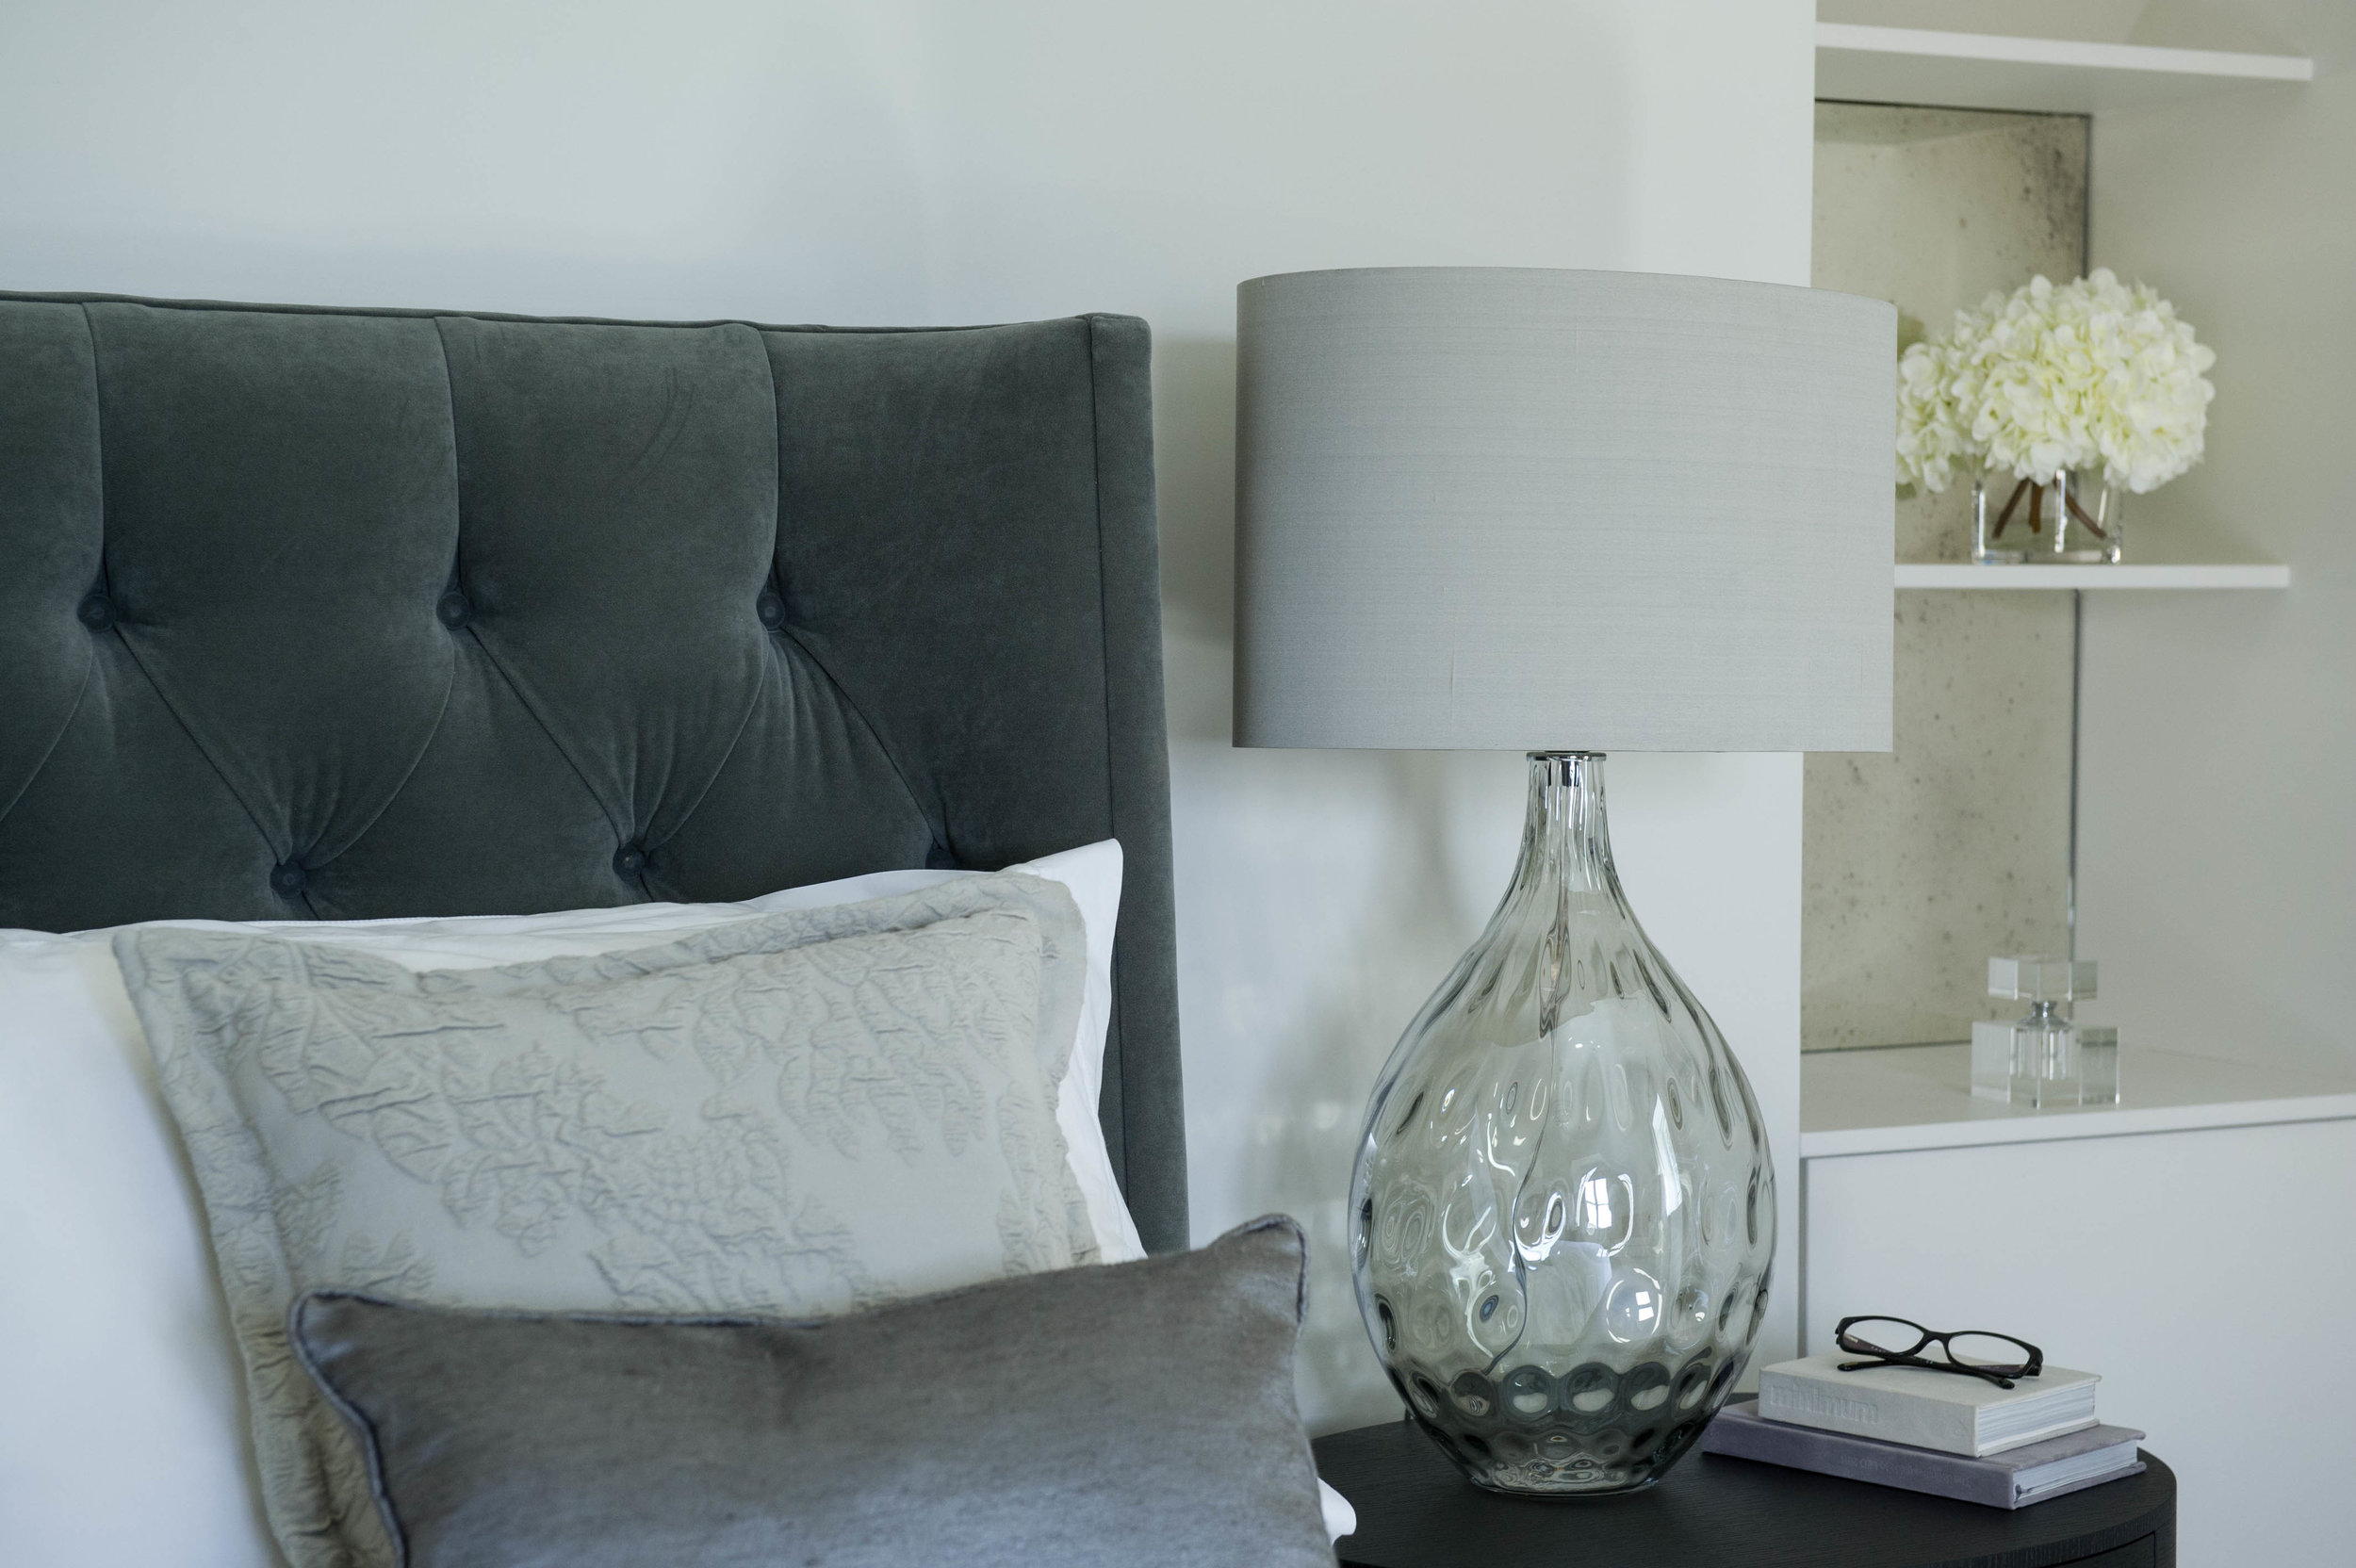 Detail of glass table lamp, cushions and mirrored alcoves dressed with vase of white hydrangea's and perfume bottle.